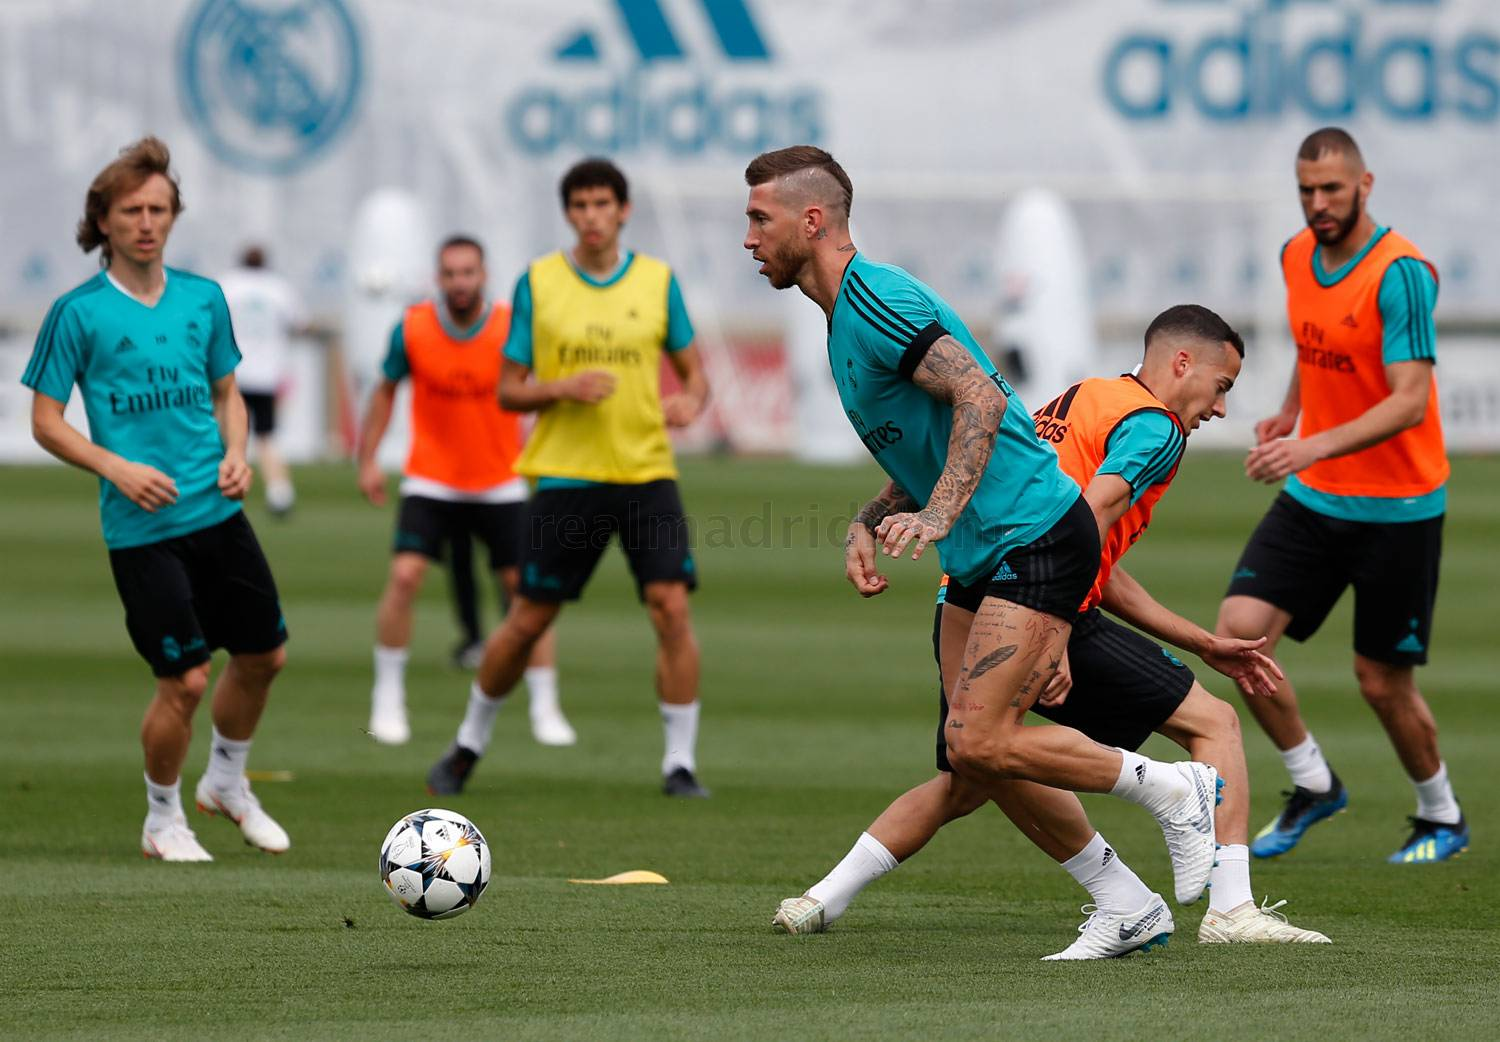 Real Madrid - Entrenamiento del Real Madrid - 24-05-2018